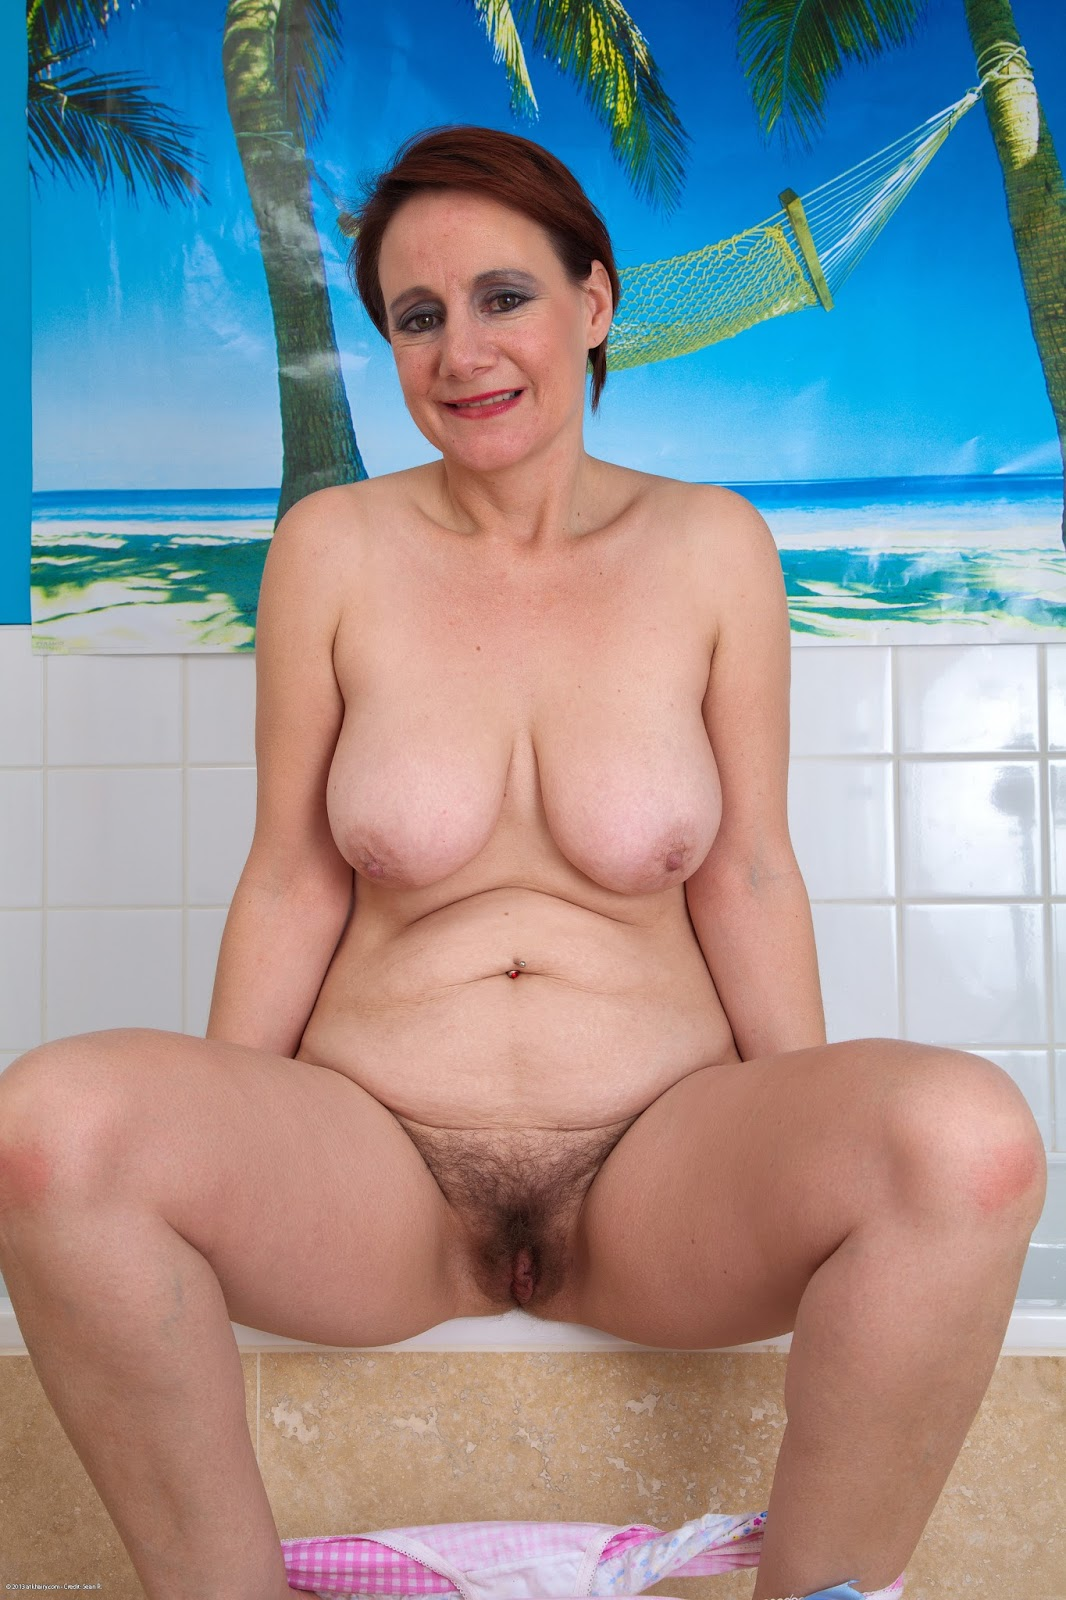 mature nude ladies in bath